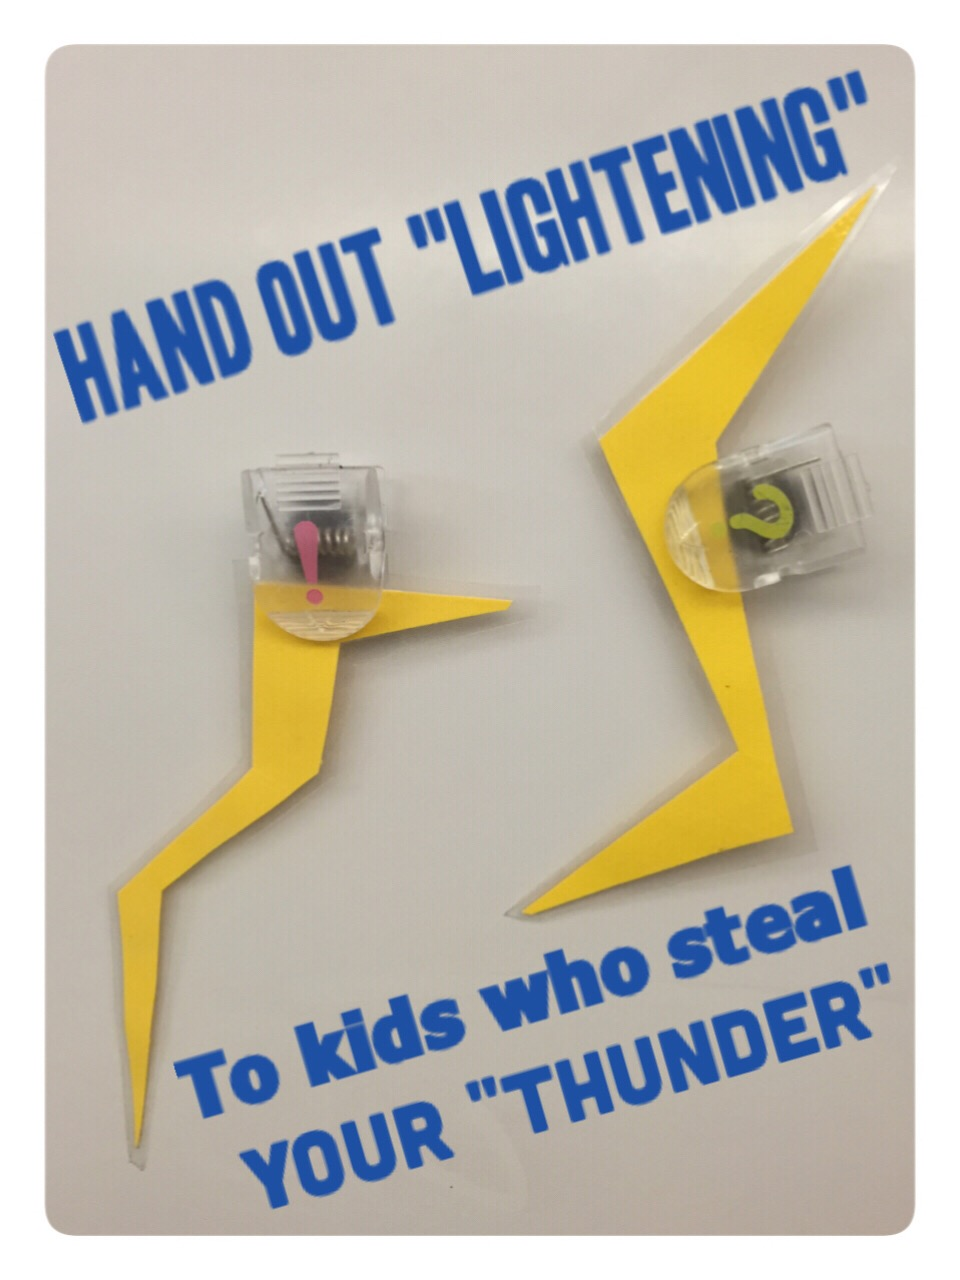 """Reluctant student participation? Hand out lightening bolts to students who """"steal your thunder"""" and guess what you are about to say!  www.theardentteacher.com"""